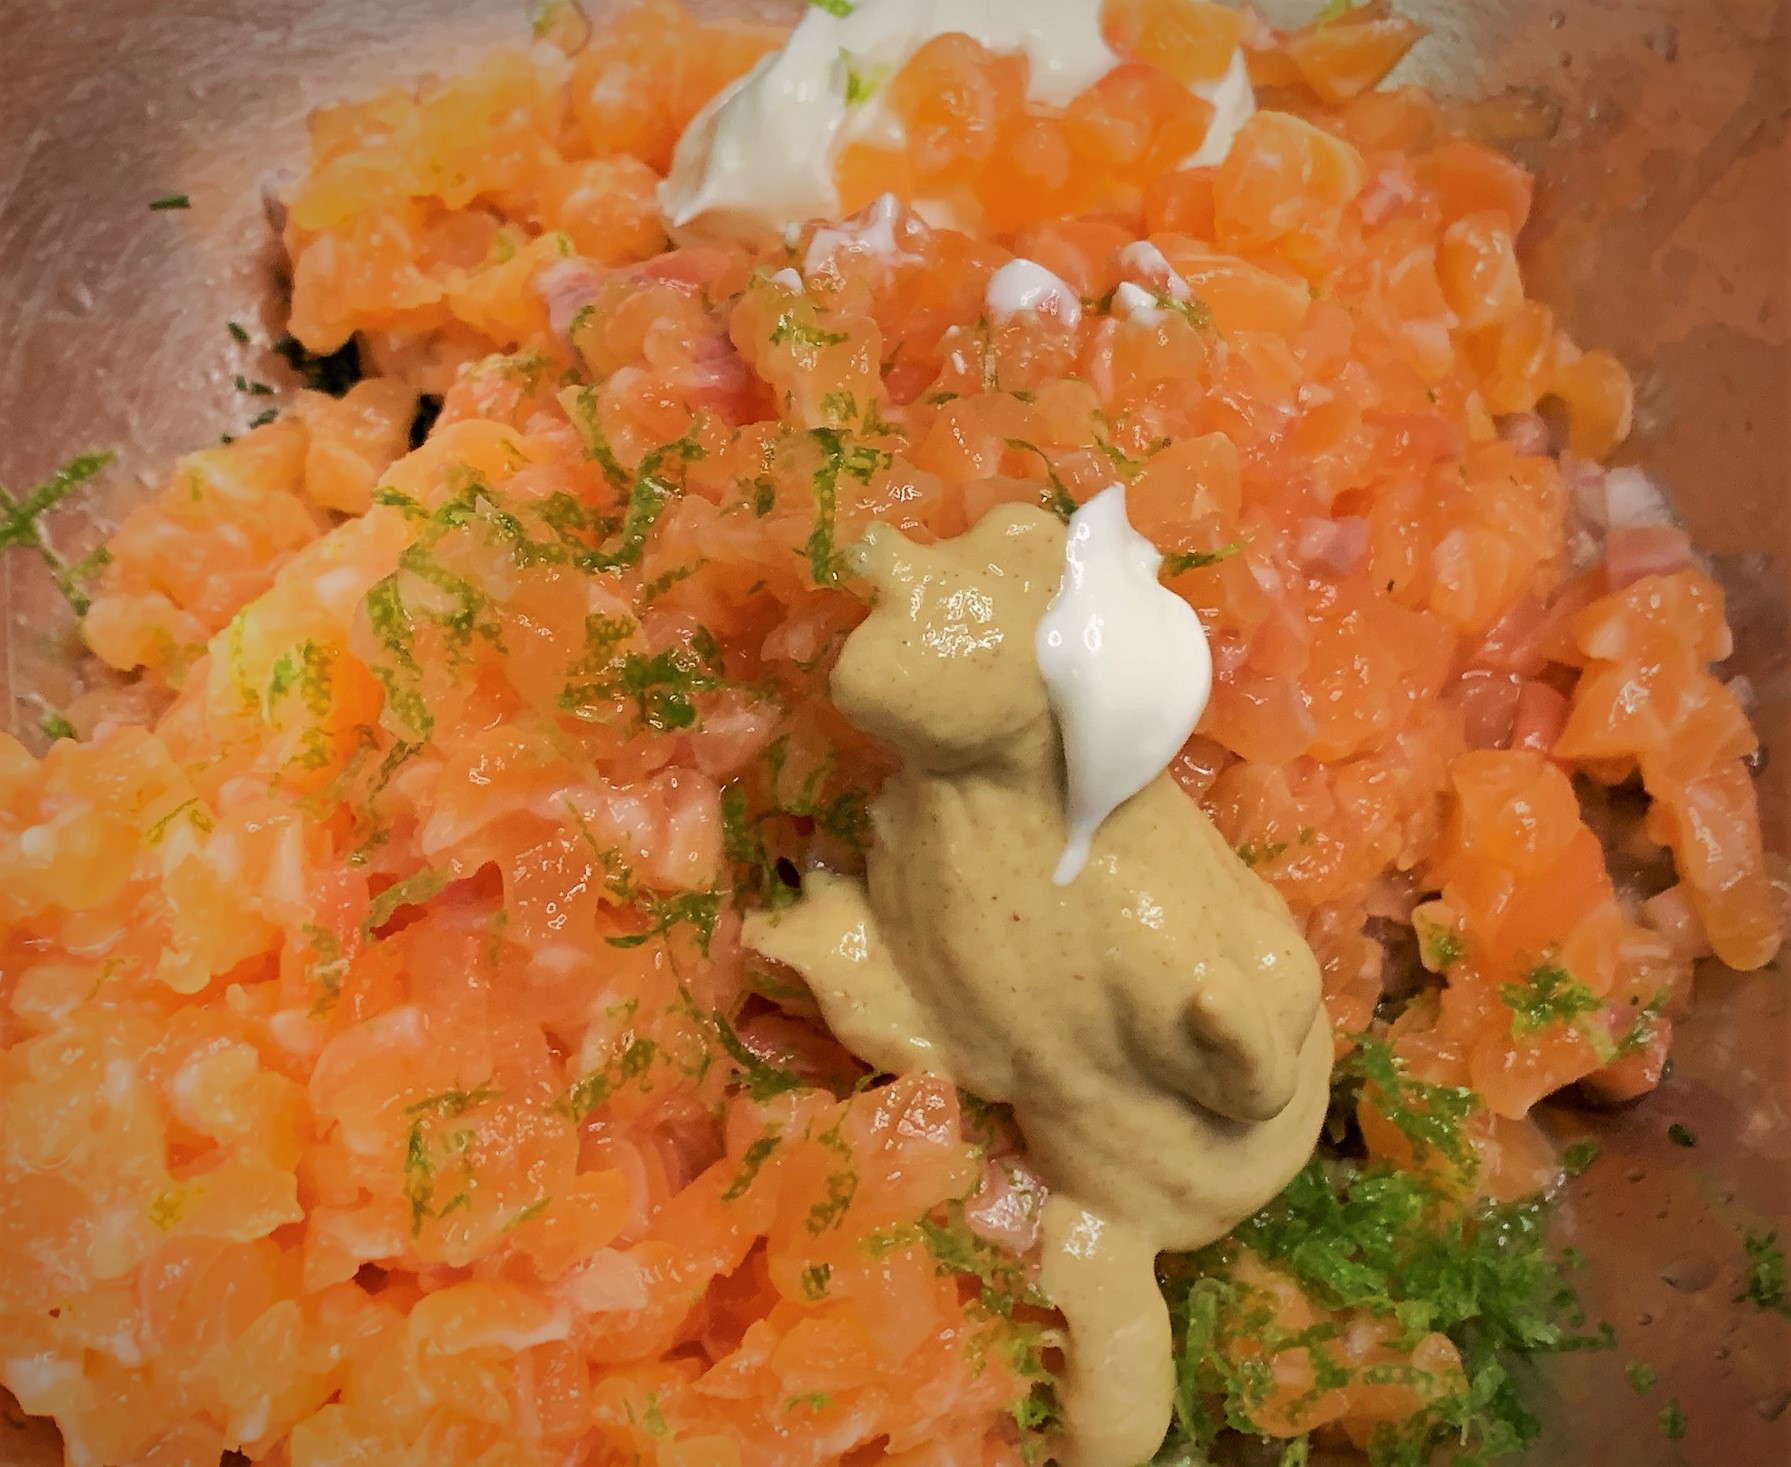 The Salmon Tartare ingredients added to a bowl prior to mixing